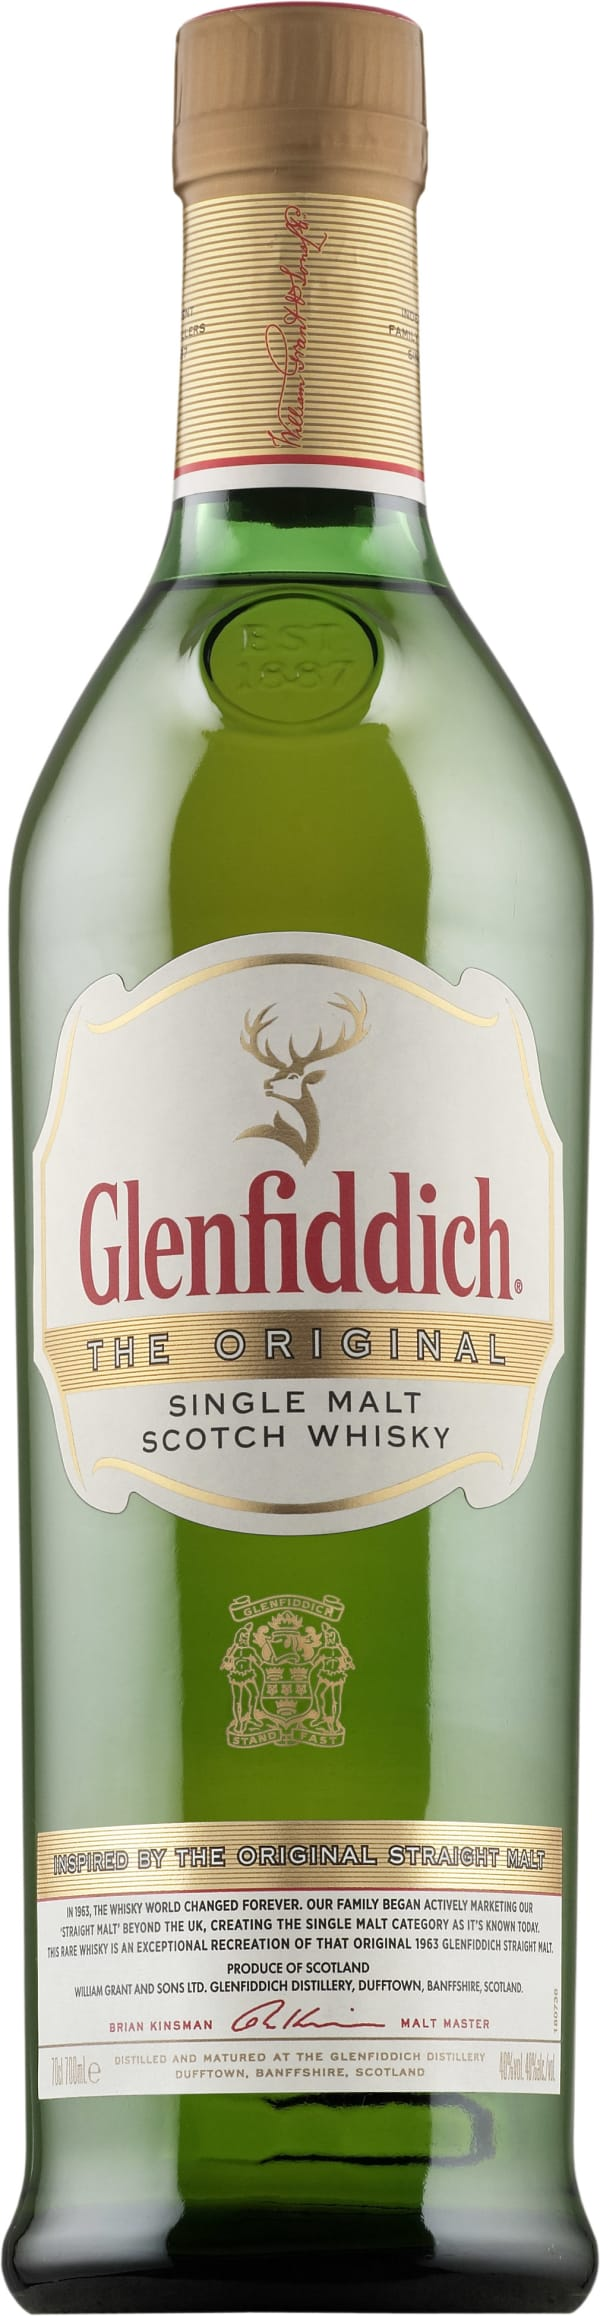 Glenfiddich The Original Single Malt